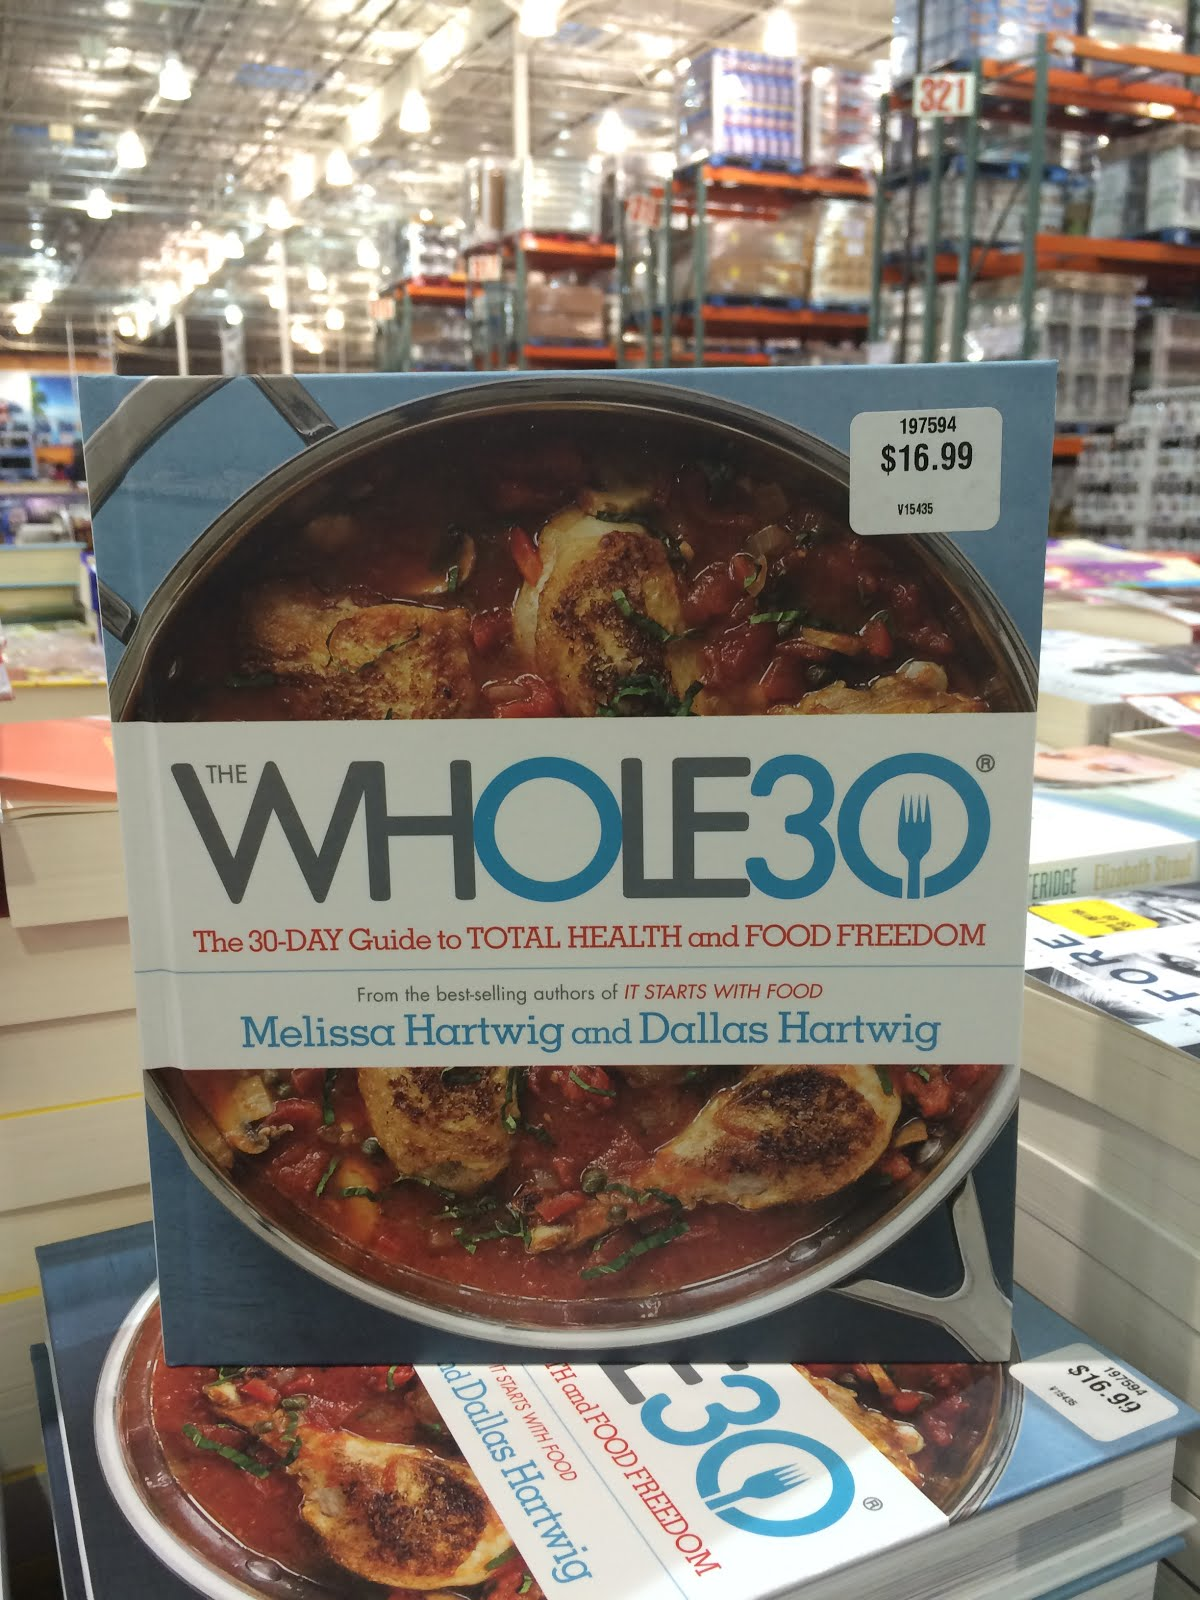 For the specifics of the Whole30 program you'll have to purchase the books,  but in a nutshell it follows a strict Paleo style diet which excludes  sugar, ...